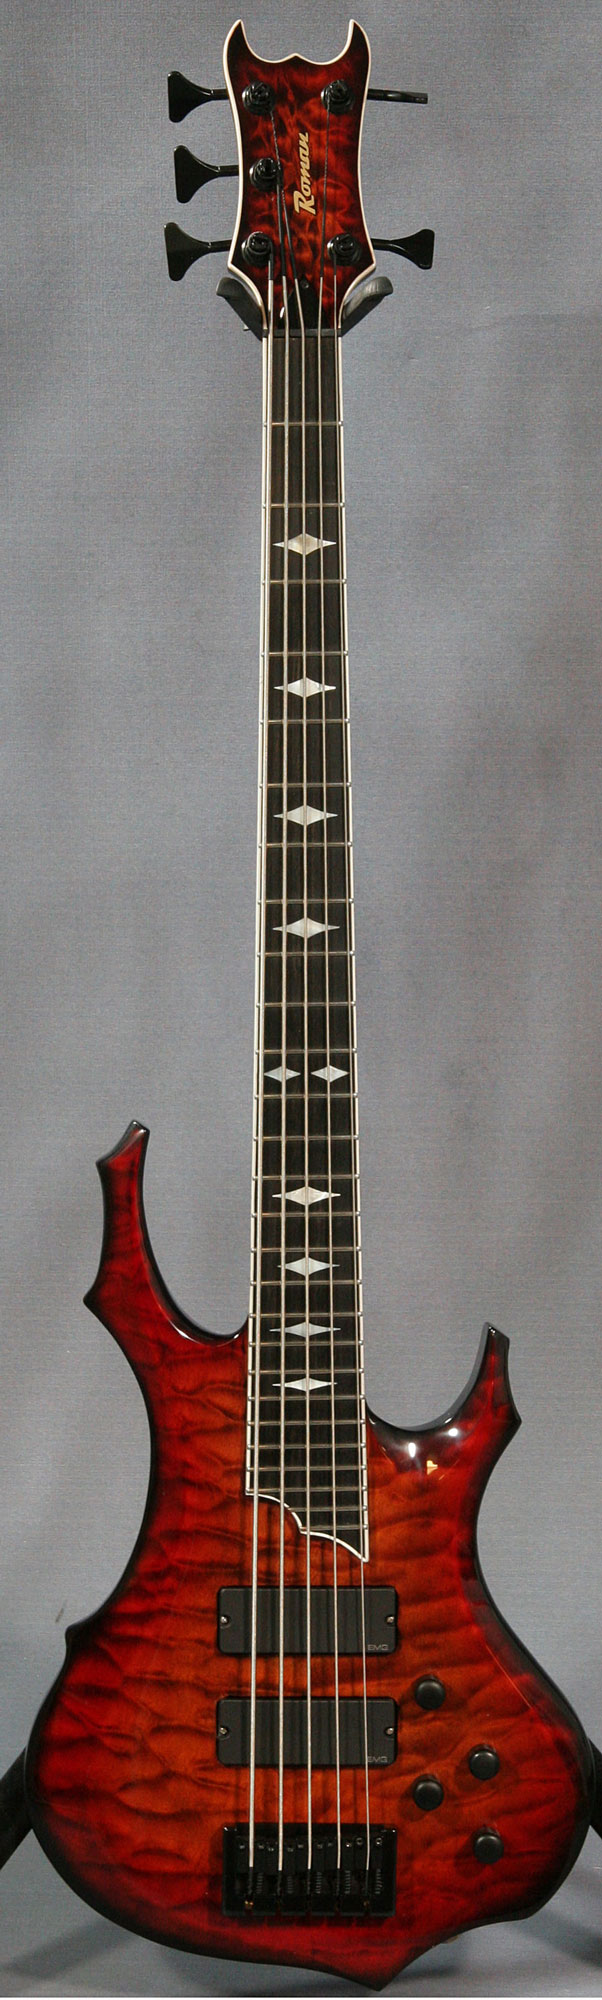 Ed Roman Custom 5 String Bass Guitar